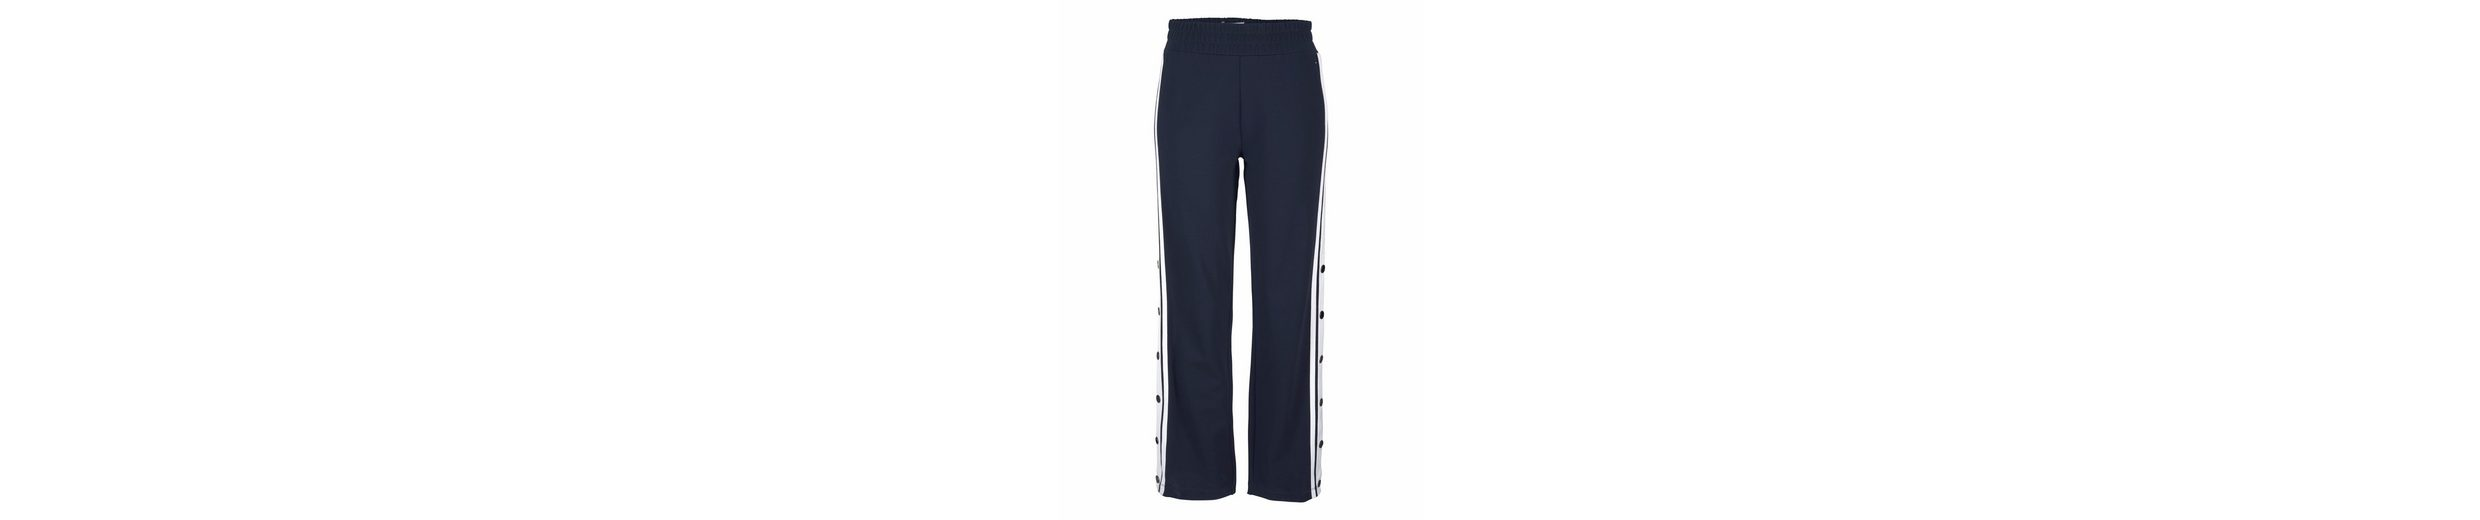 TOMMY JEANS Jogger Pants, mit go-faster-Streifen